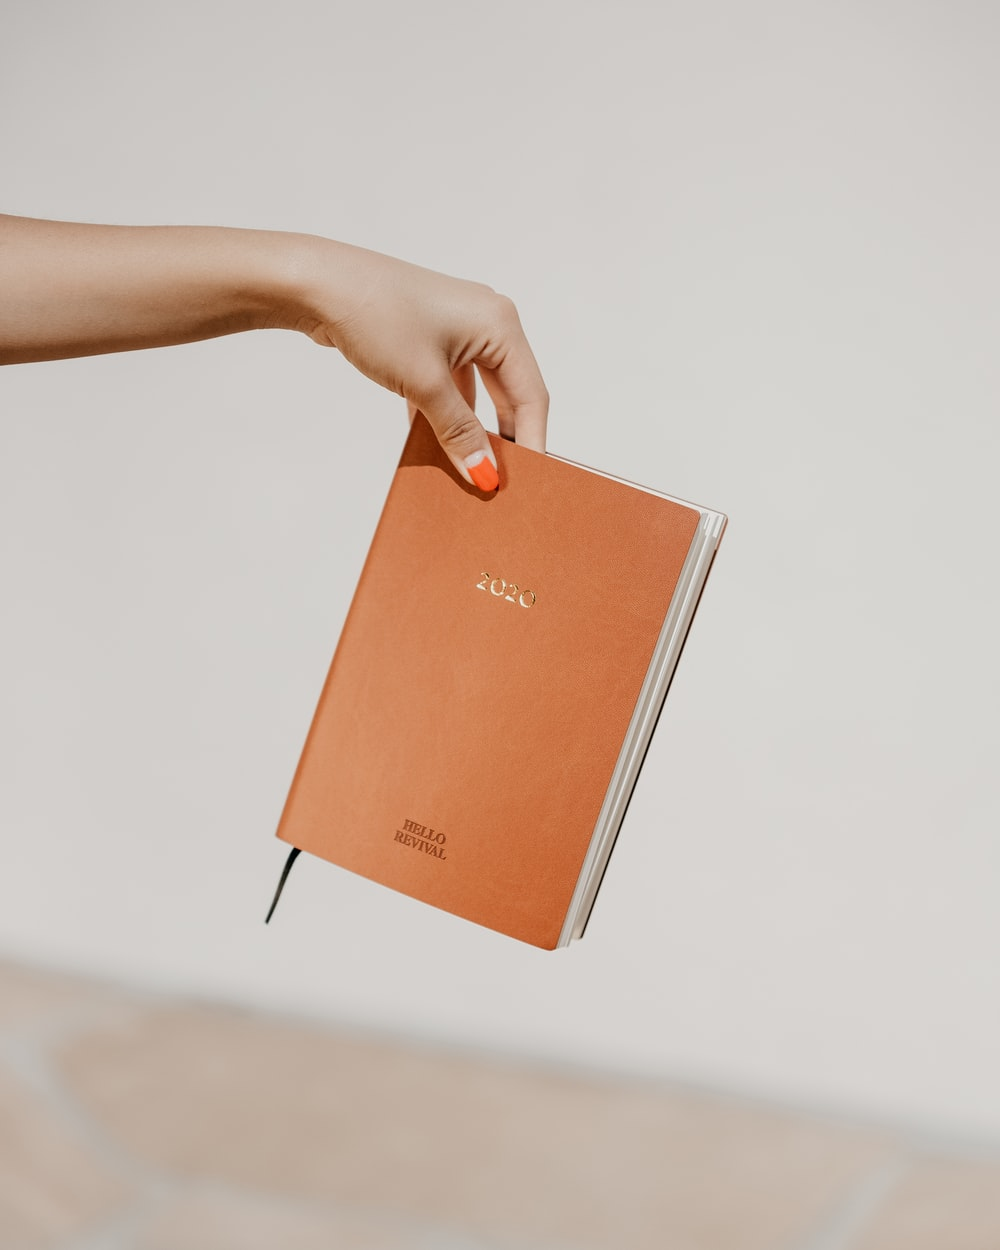 person holding brown book